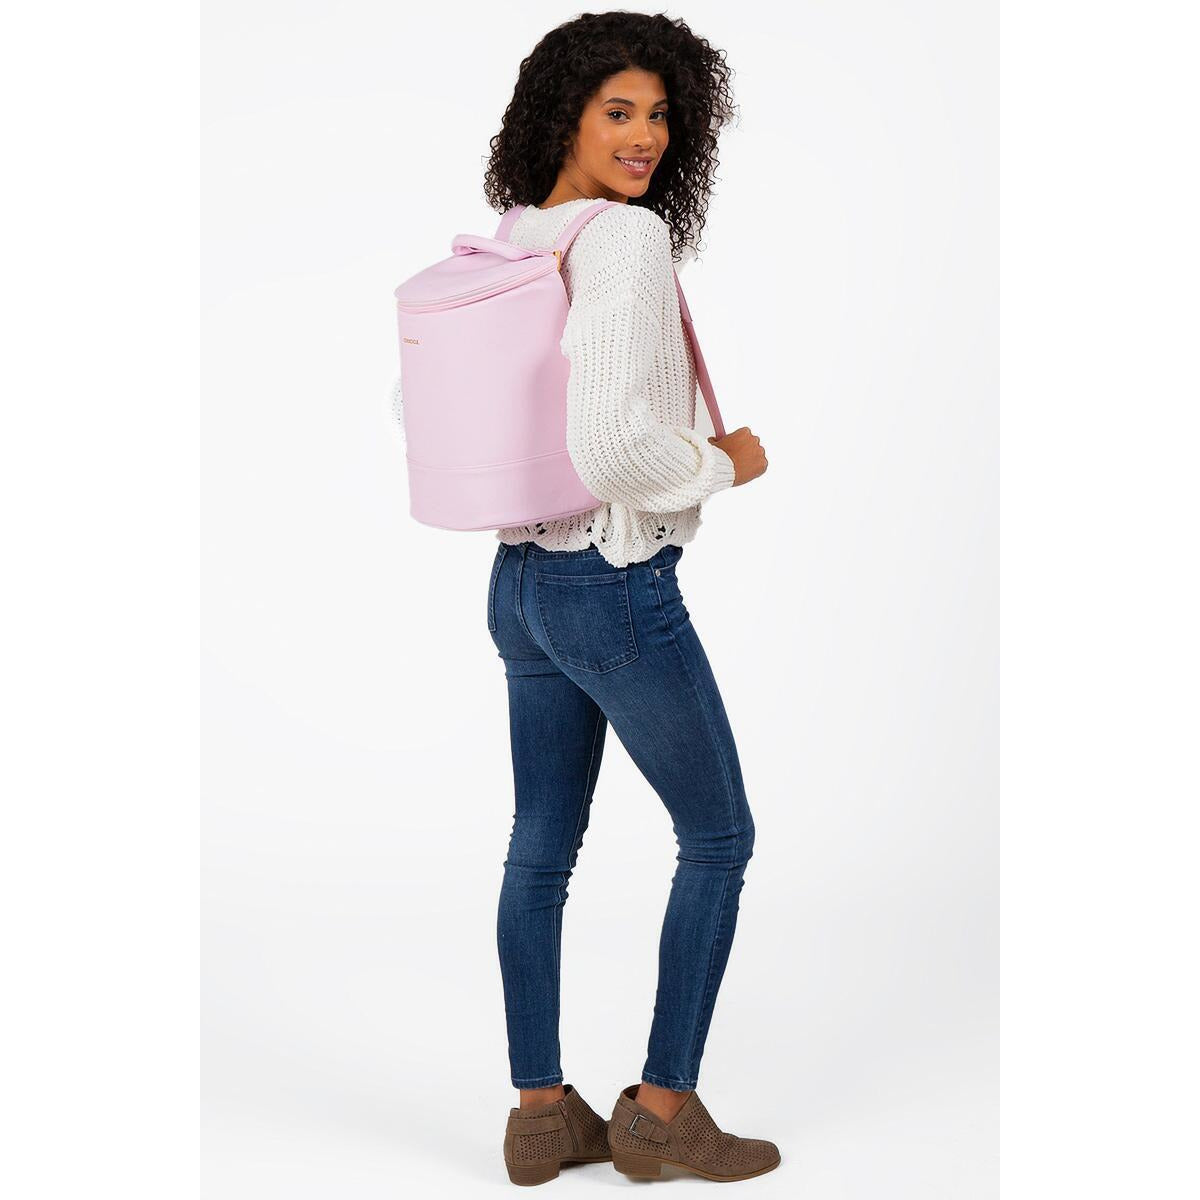 Corkcicle - EOLA BUCKET BAG - Rose Quartz - shown on model